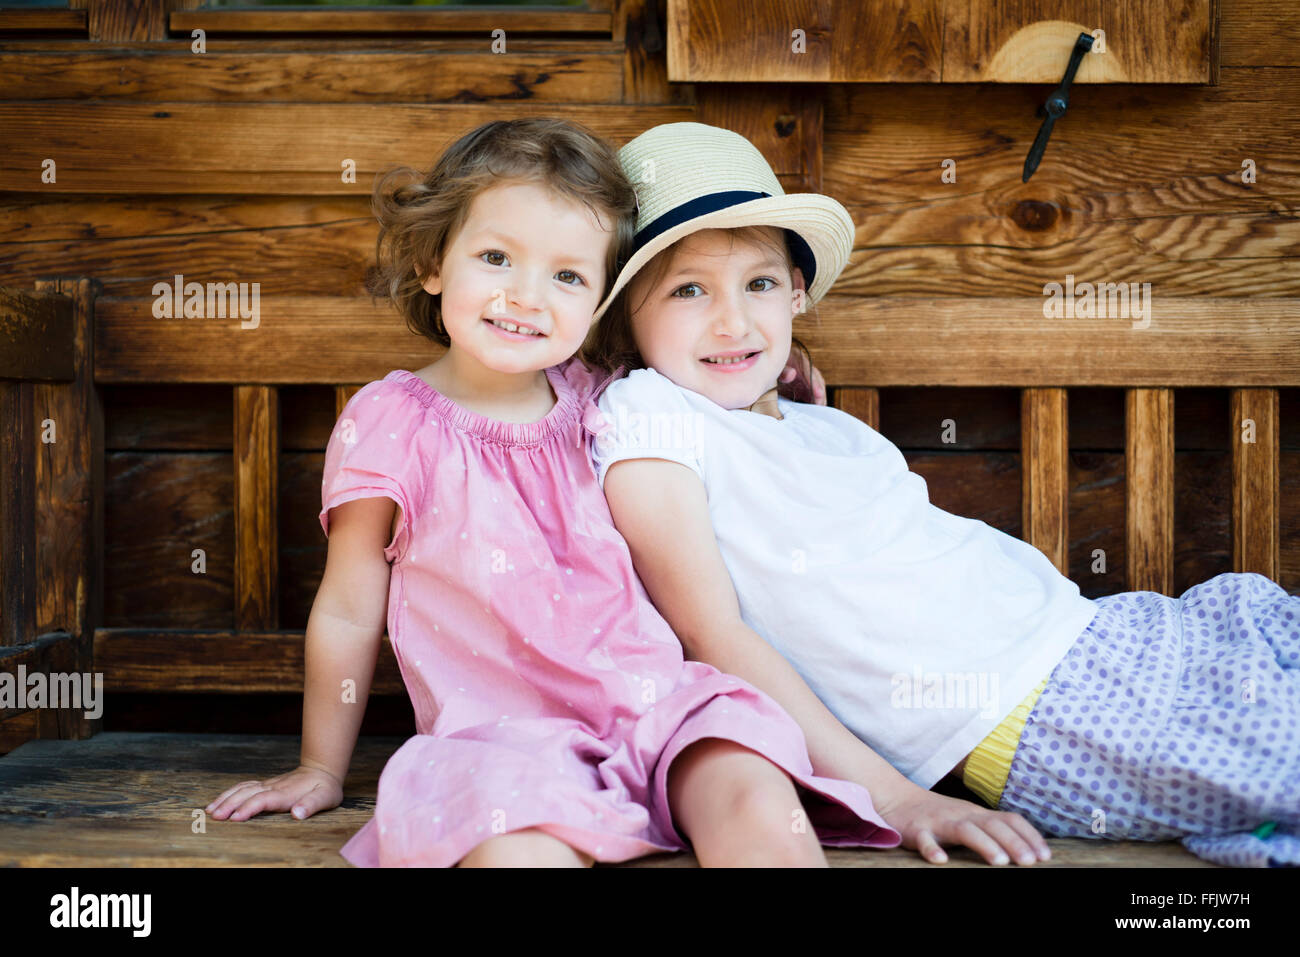 Portrait of two little girls on bench - Stock Image